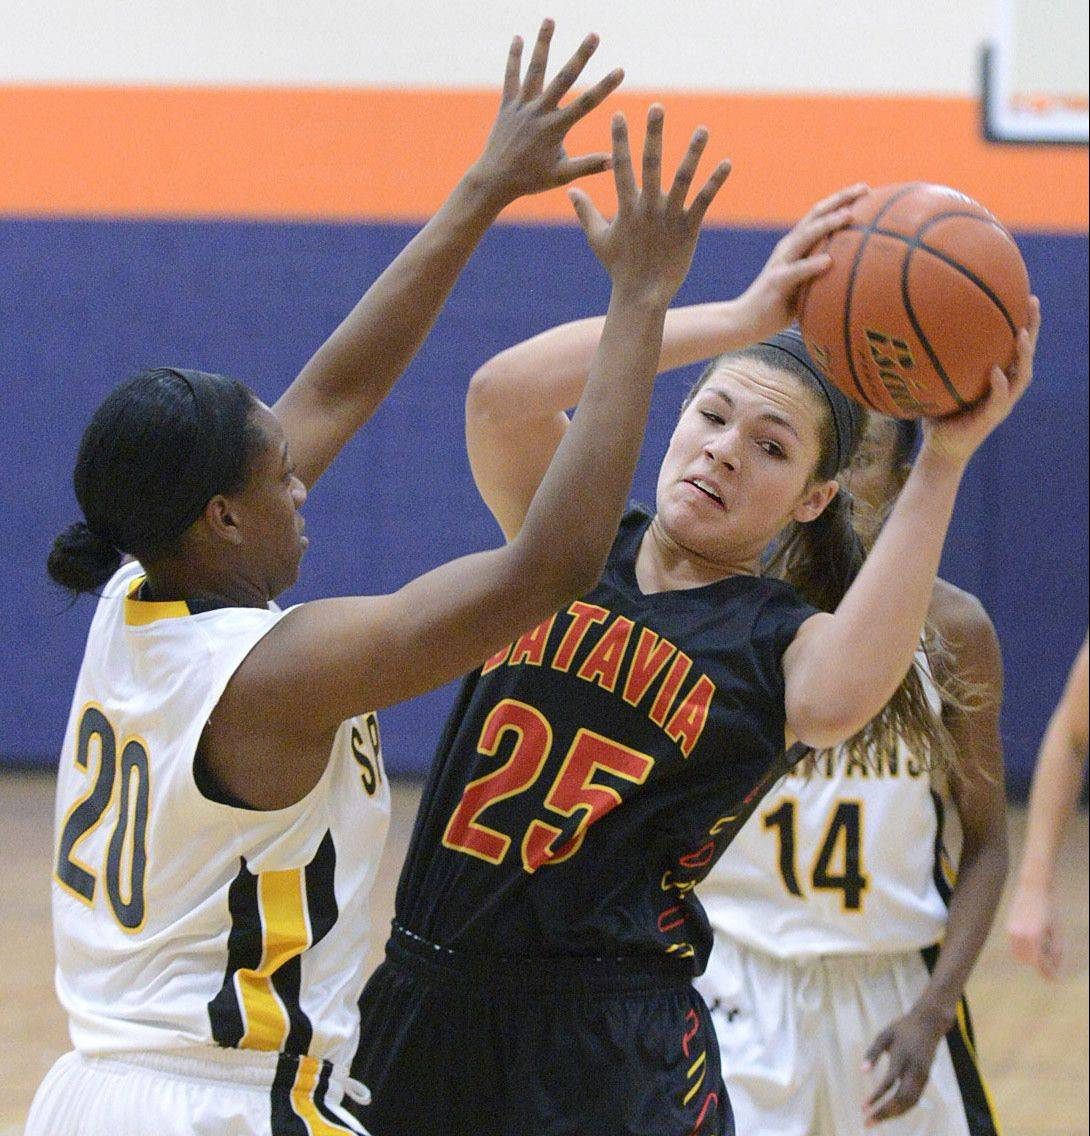 Batavia's Hannah Frazier attempts to pass around Marian Catholic's Dajhae Mullins in the first quarter on Wednesday in Oswego.